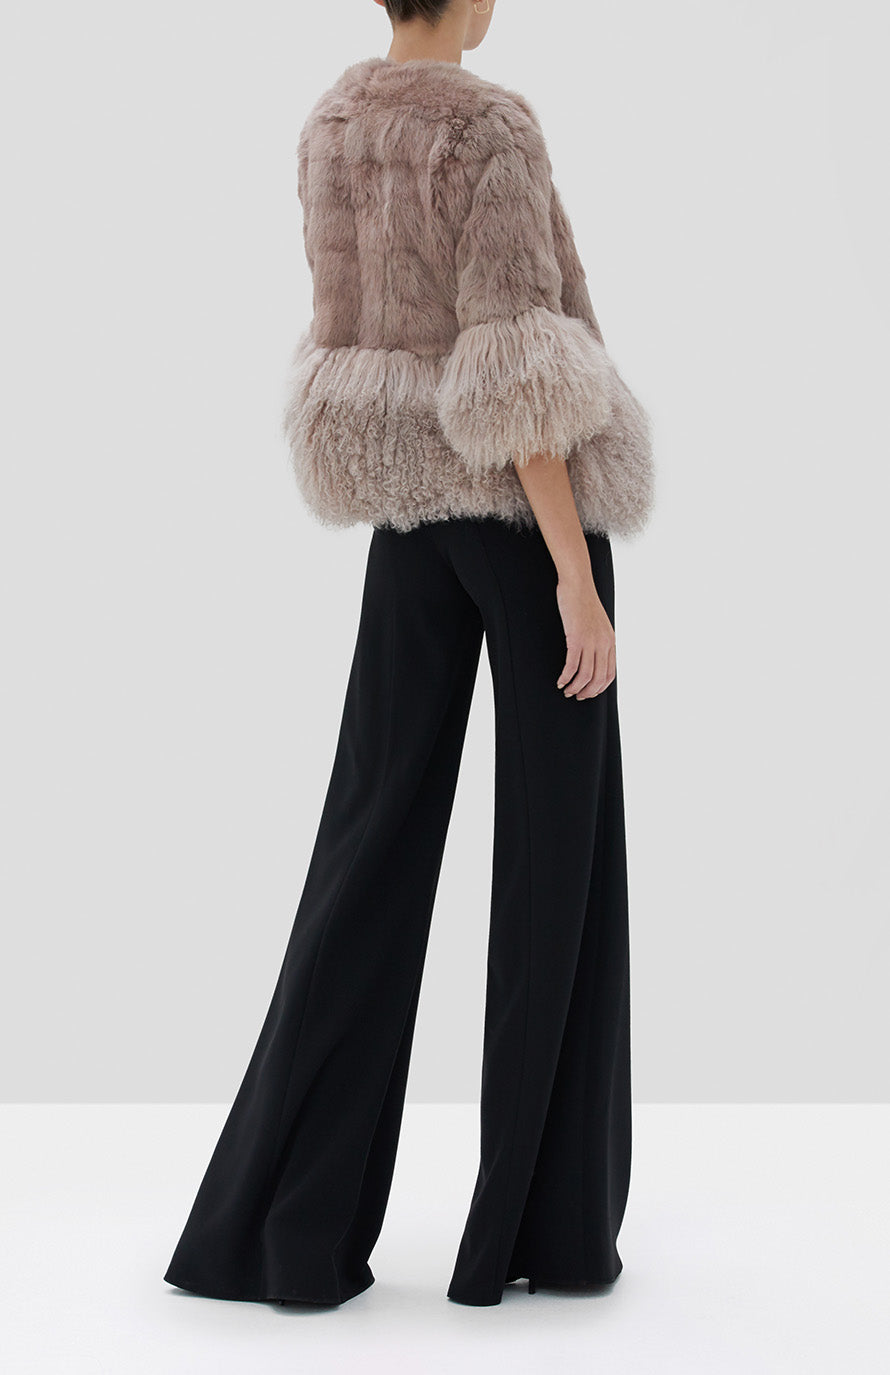 Alexis Sawyer Fur Jacket in Blush and Irvine Pant in Black - Rear View